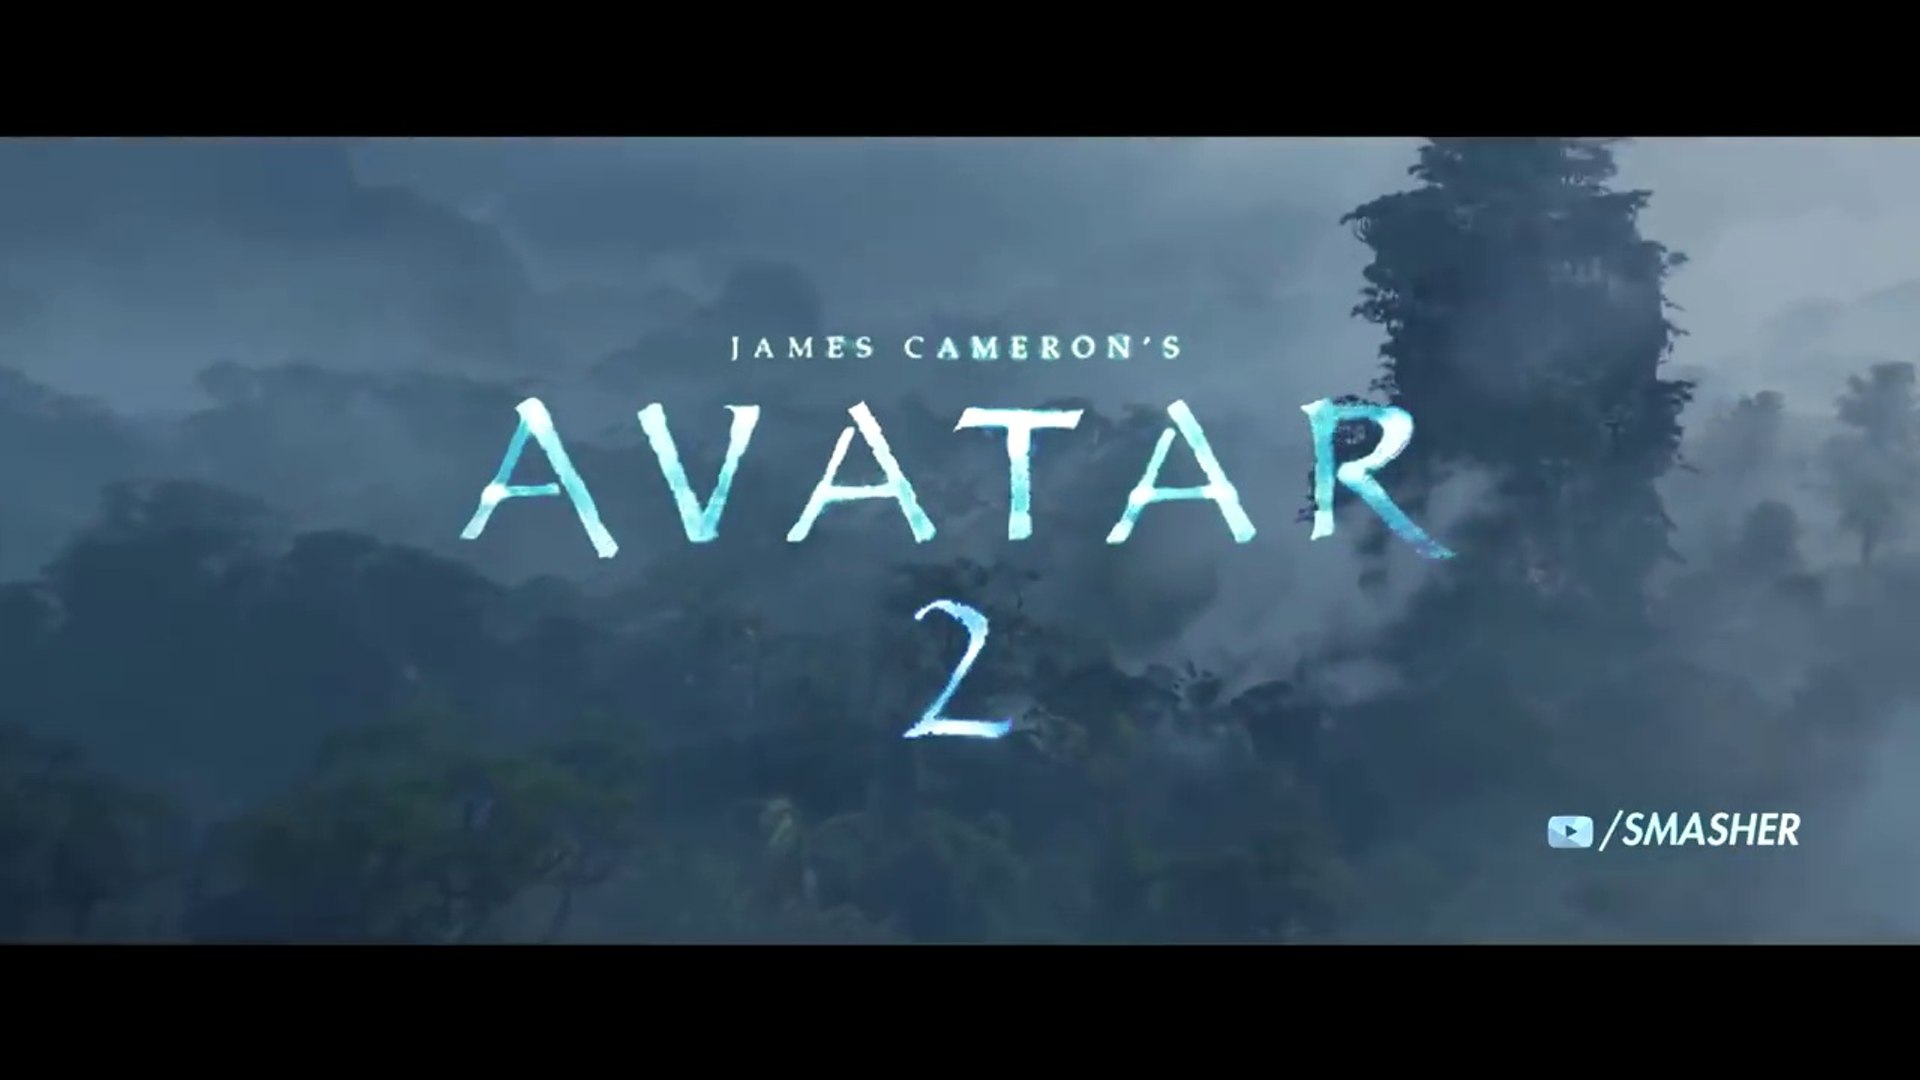 AVATAR 2 - Teaser Trailer (2020) 'Return to Pandora' Concept — Zoe Saldana Mo_HD